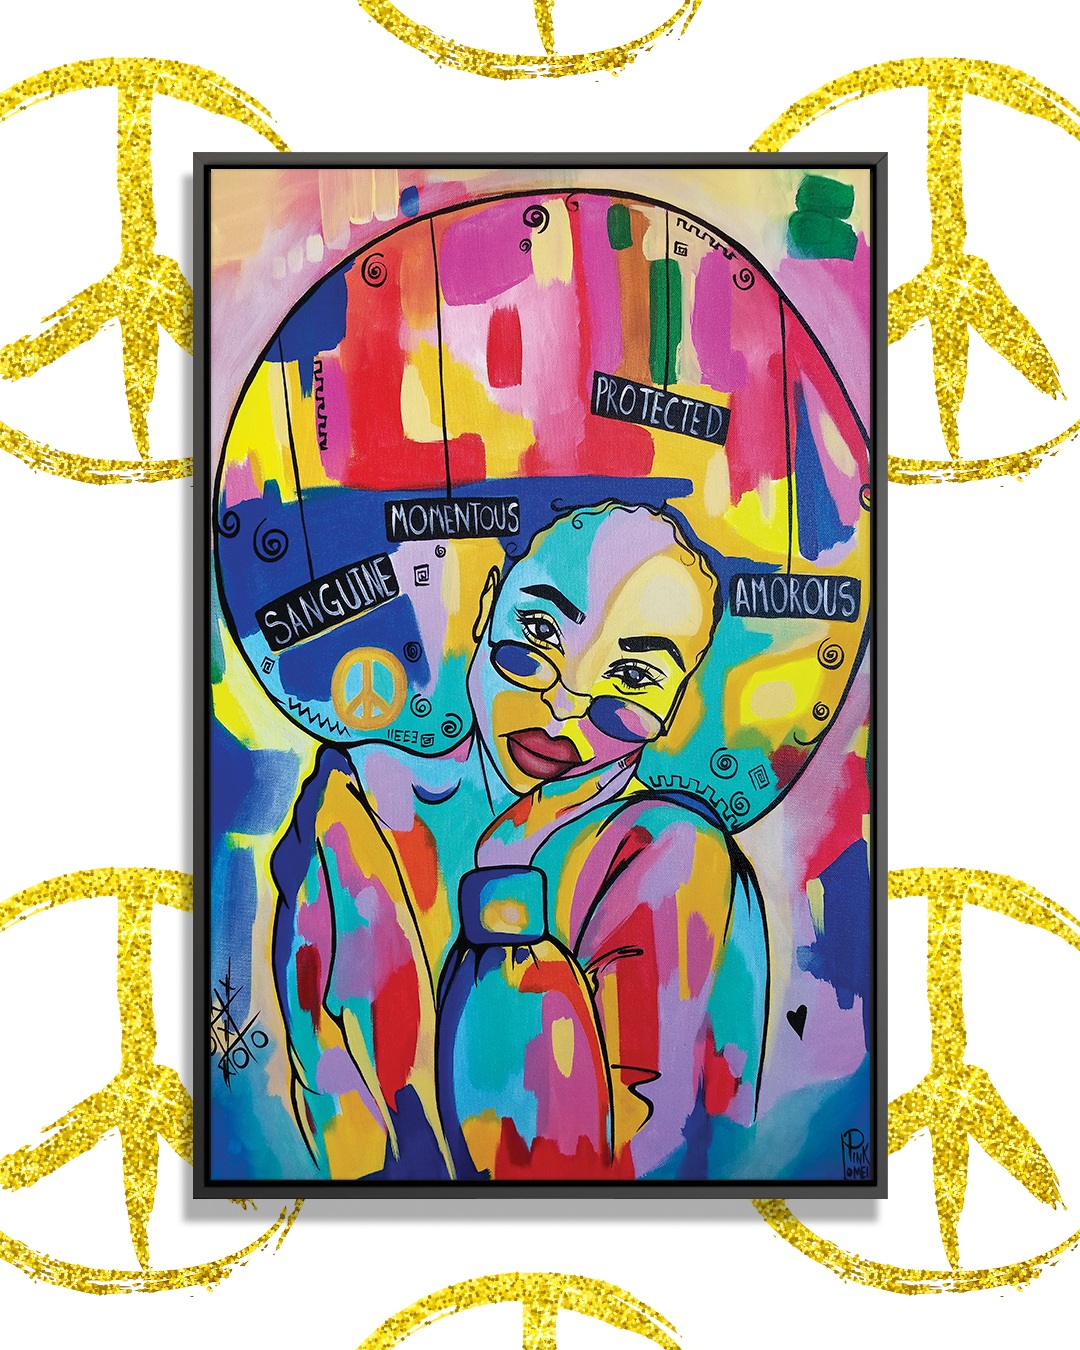 """Painting of a black woman with a large afro wearing sunglasses against a multi-color background with text around her that says """"Sanguine,"""" """"Momentous,"""" """"Protected,"""" and """"Amorous"""""""